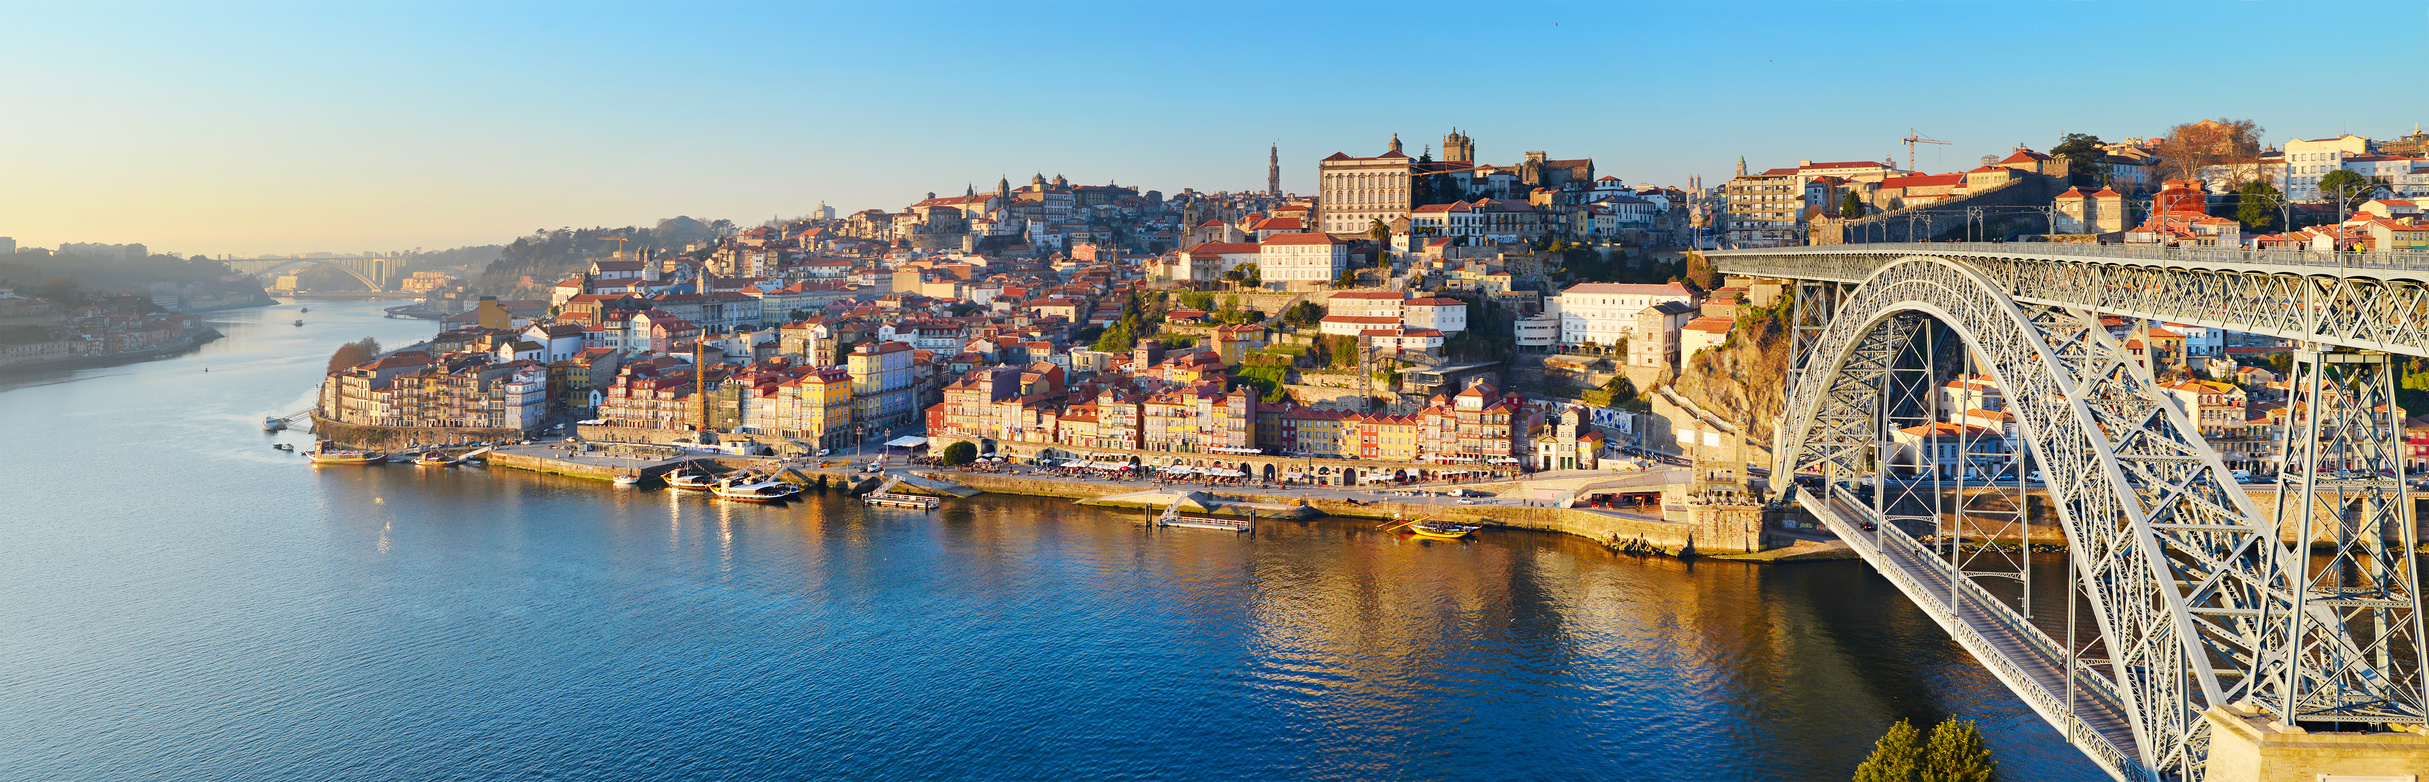 Porto_traveling_holidays_Portugal_realestate_invest_property